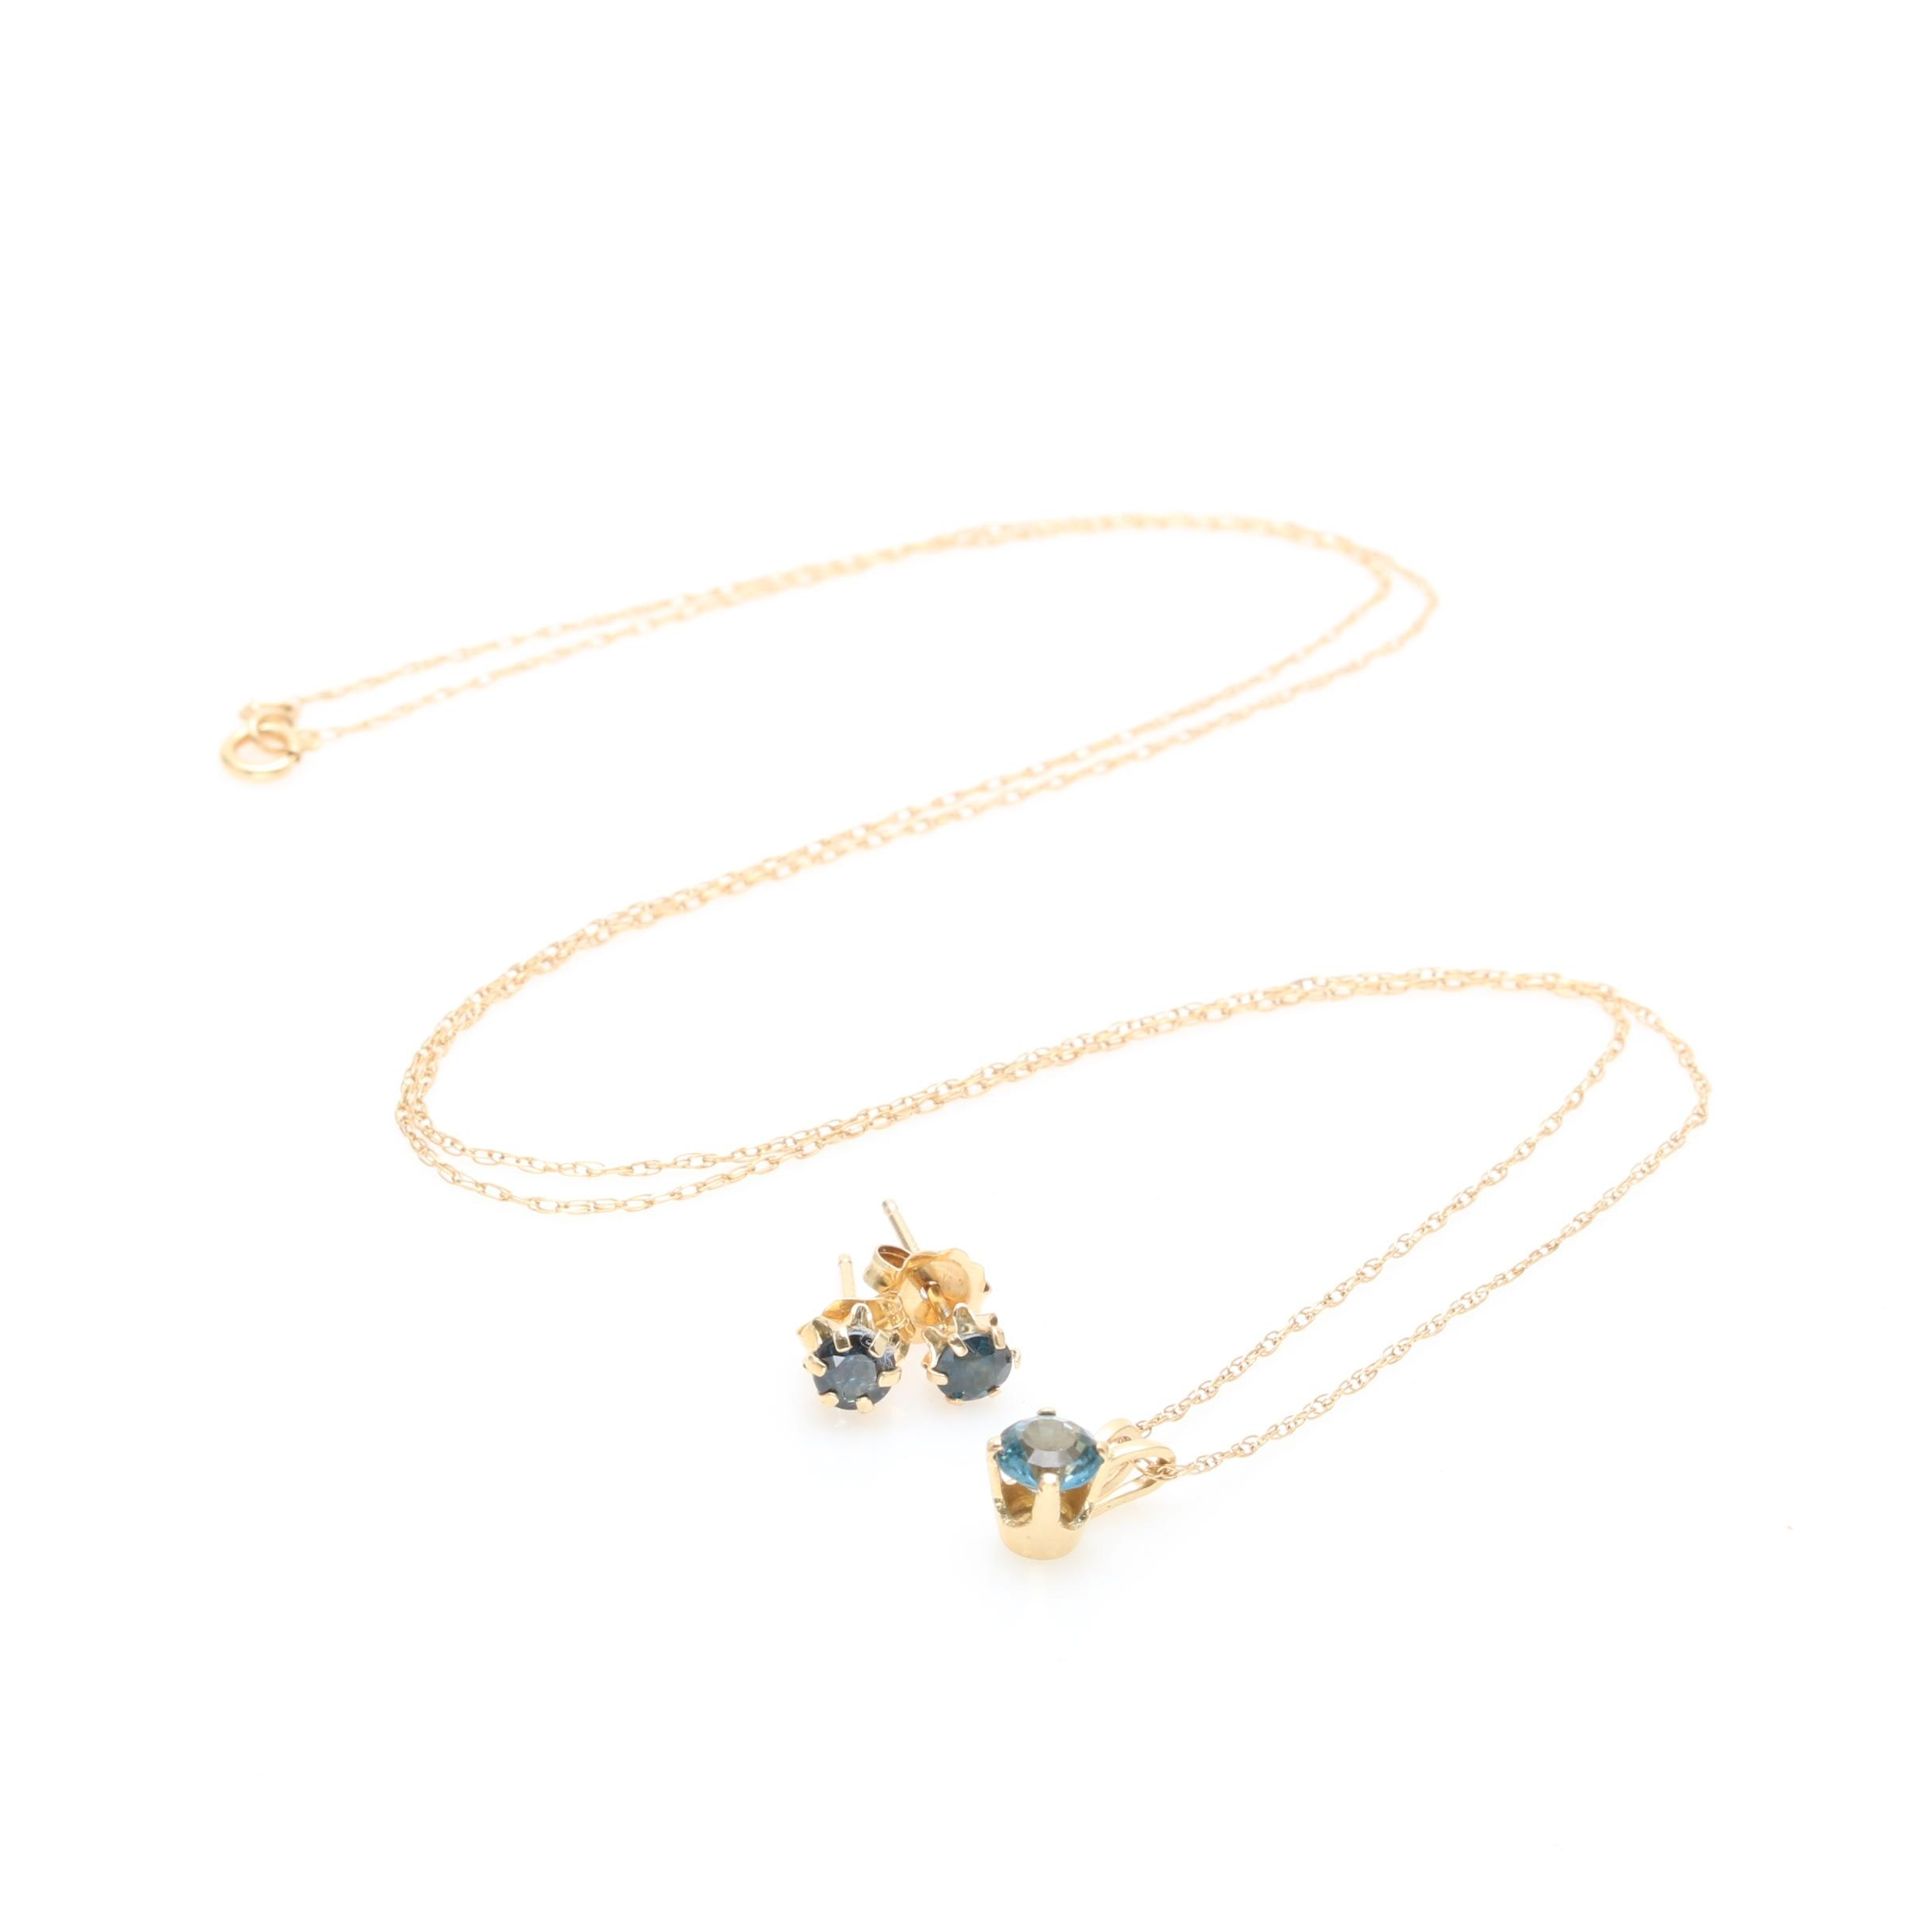 14K Yellow Gold Sapphire and Spinel Necklace and Earrings